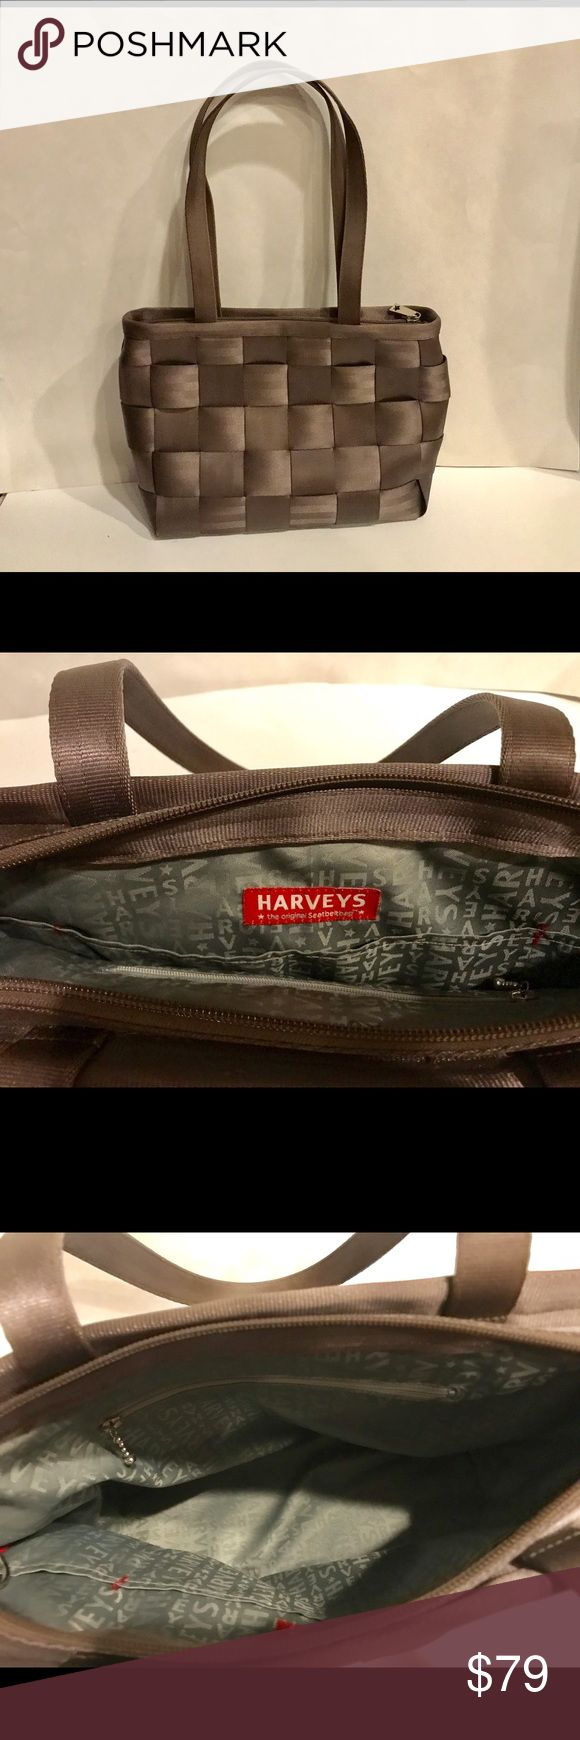 """EUC, & like new, HARVEYS ORIGINAL SEATBELT BAG Dimensions H-11.5 """" x W-15.5"""" x handle drop approximately 3.5-3.75"""". HARVEYS ORIGINAL SEATBELT BAG. EUC, looks as new.! All belts in great shape, no spots ,holes, or rips I can see. Inner lining is pristinely clean.Has large zip pocket and entire bag also zip closure. (gray inner shell) Four bottom feet, silver hardware. This bag is down right funky , brilliant, & so stylin.!!! I've compared prices to this bag as it's a larger style and so EUC…"""